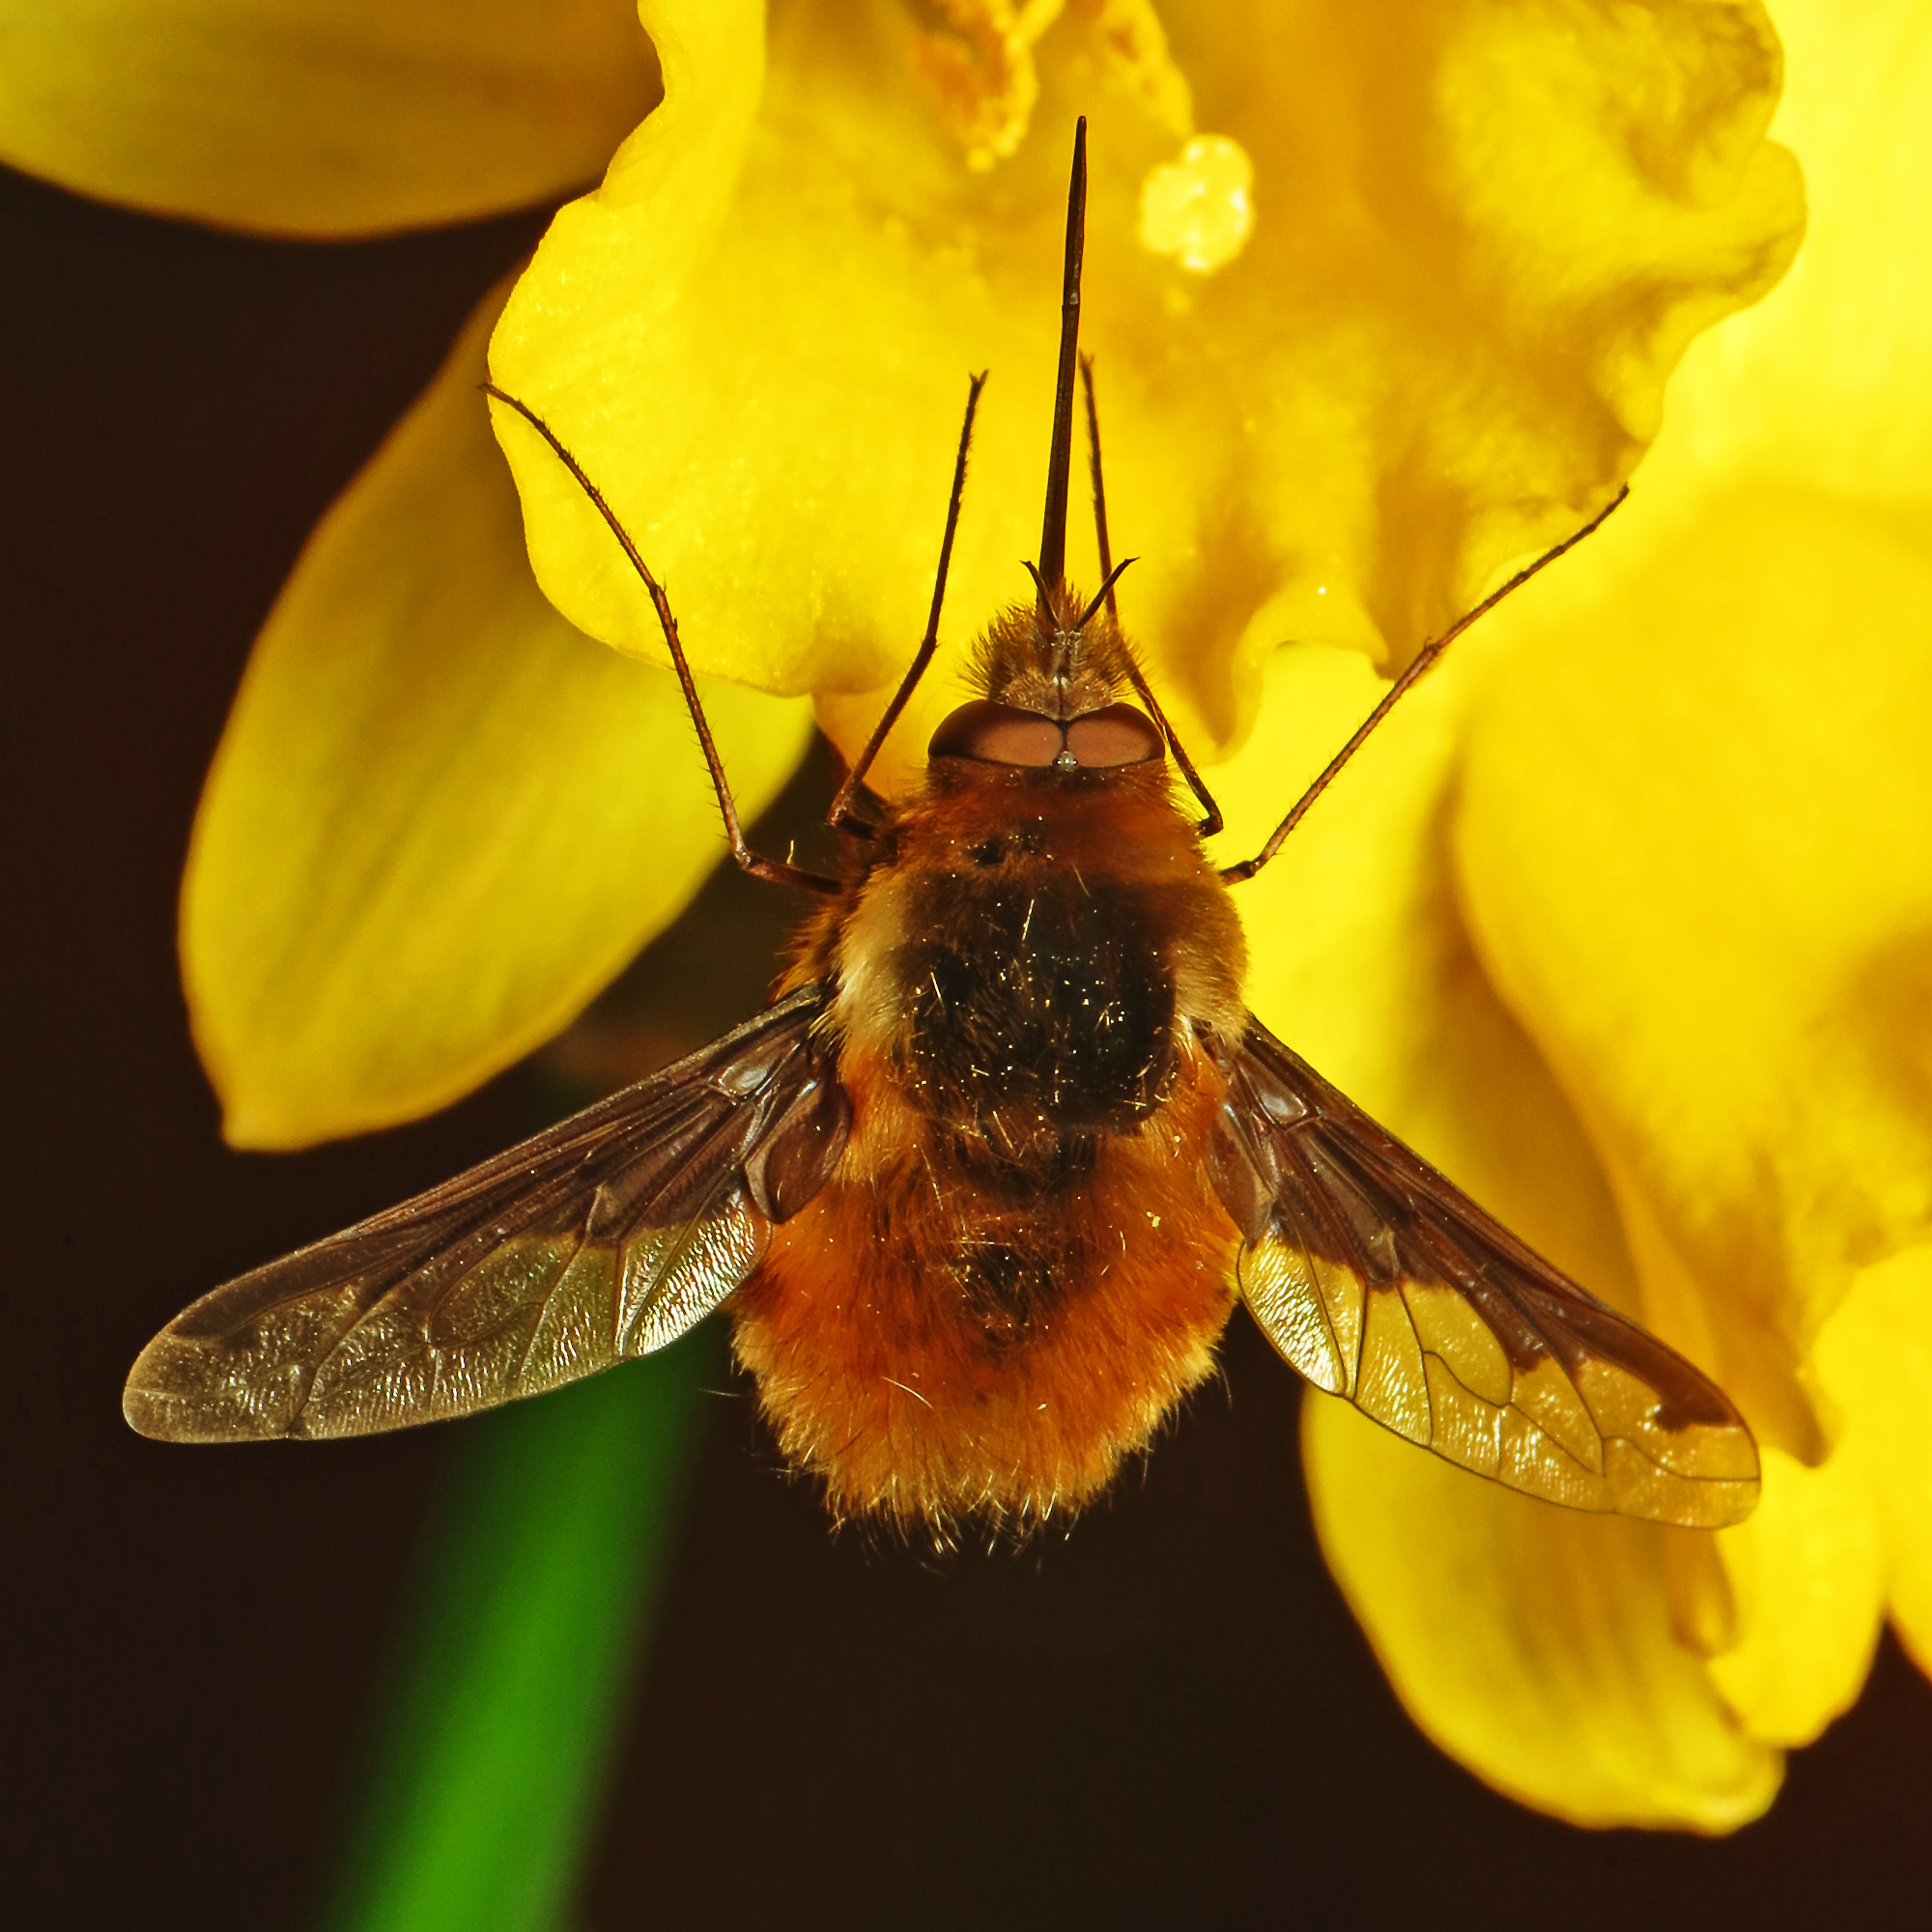 Bombing Bee flies